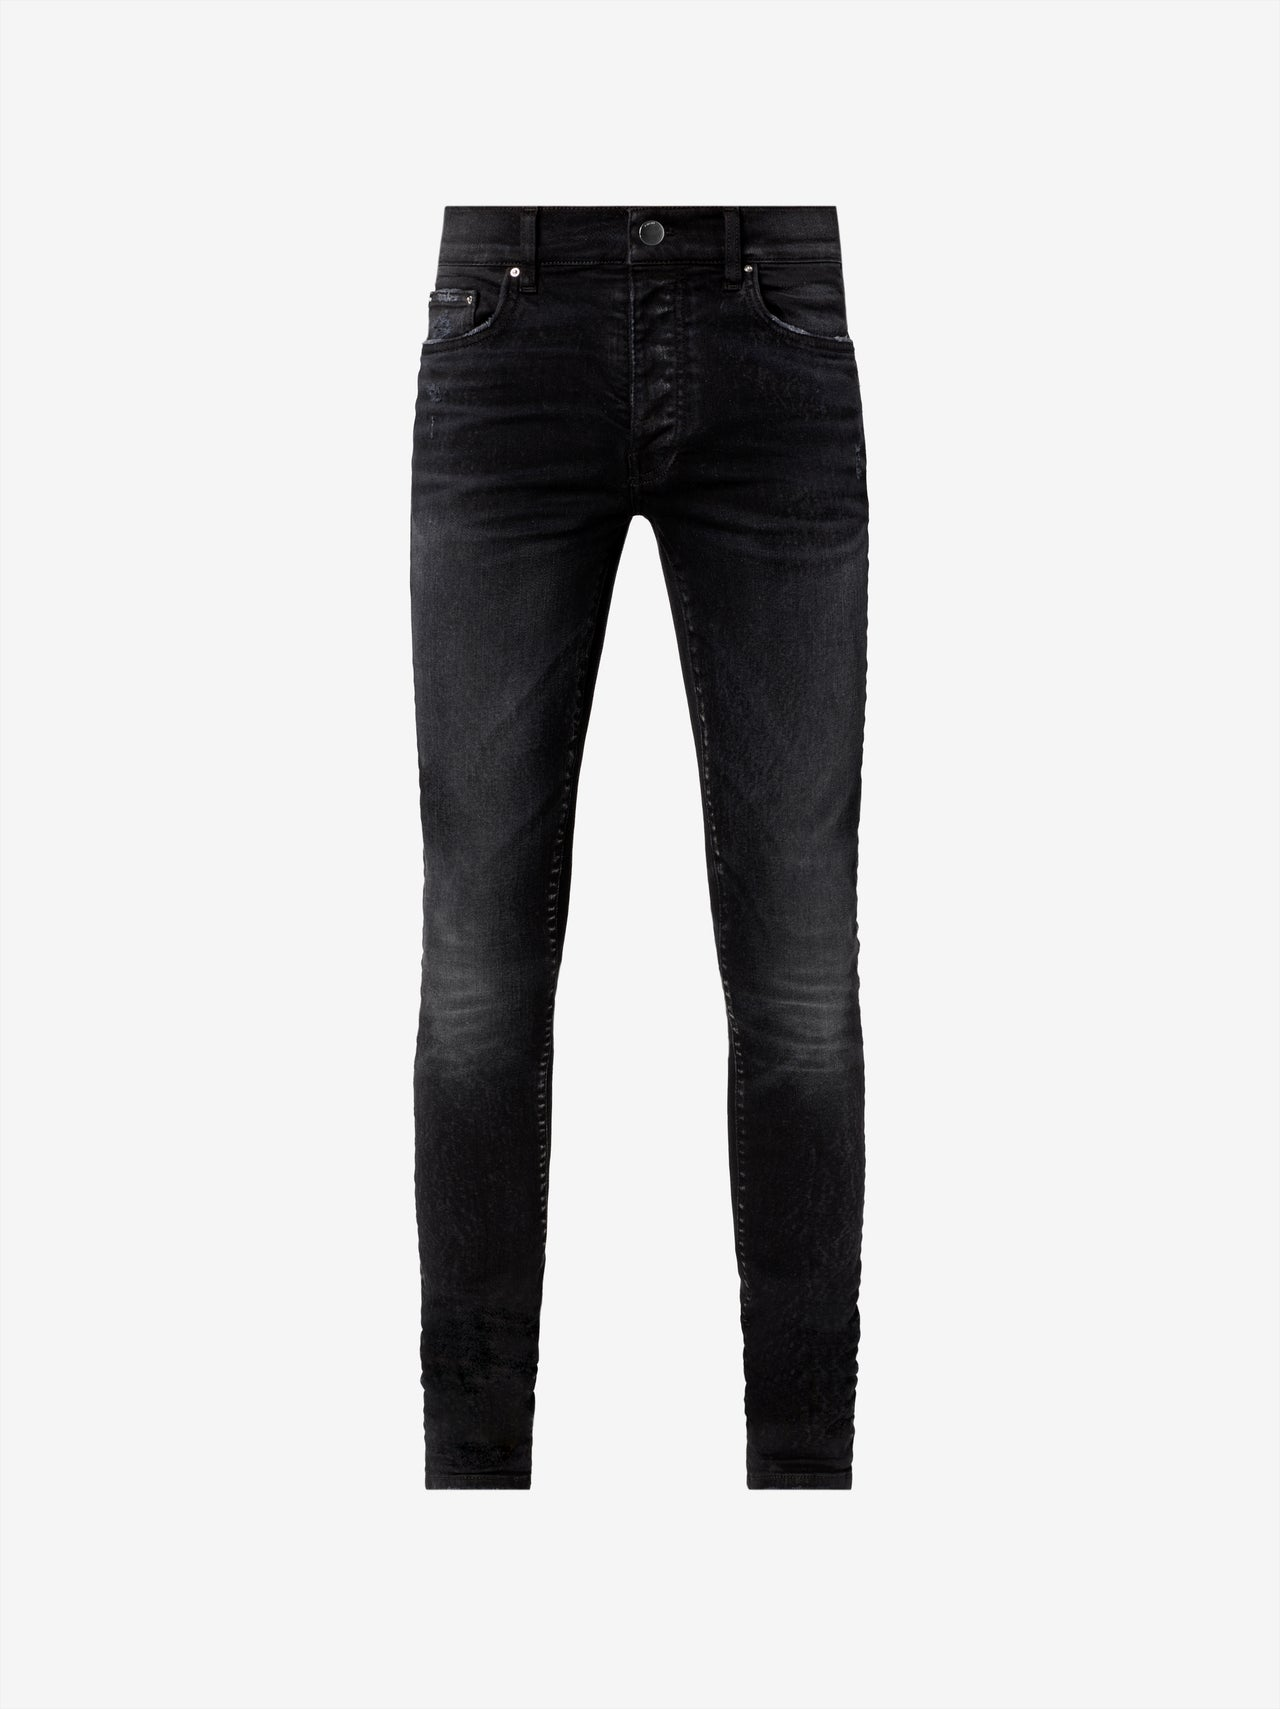 STACK JEAN - ANTIQUE BLACK